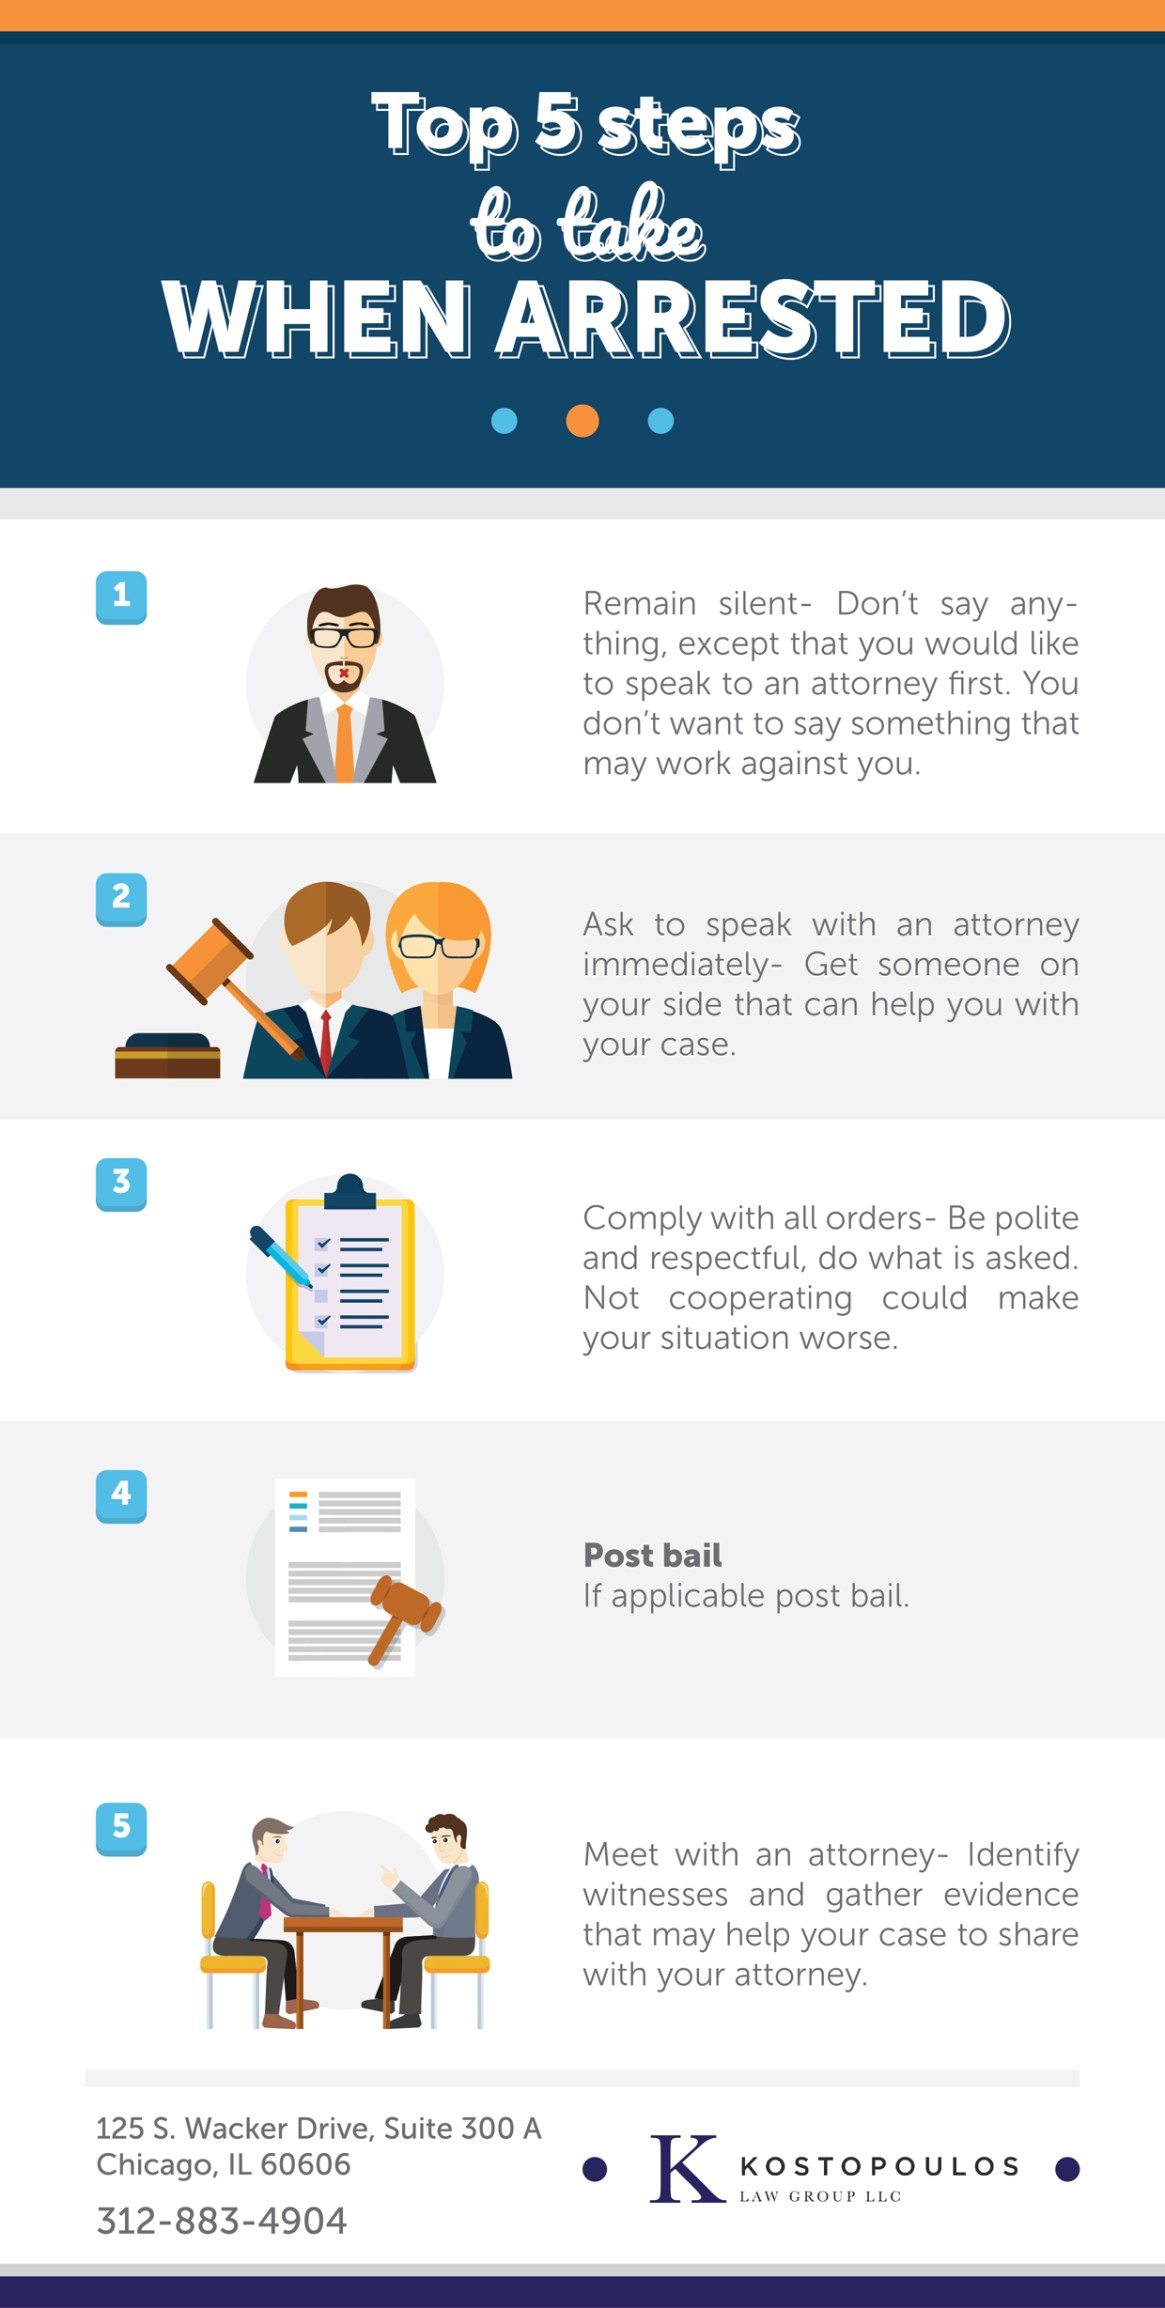 Top 5 Steps to Take When Arrested